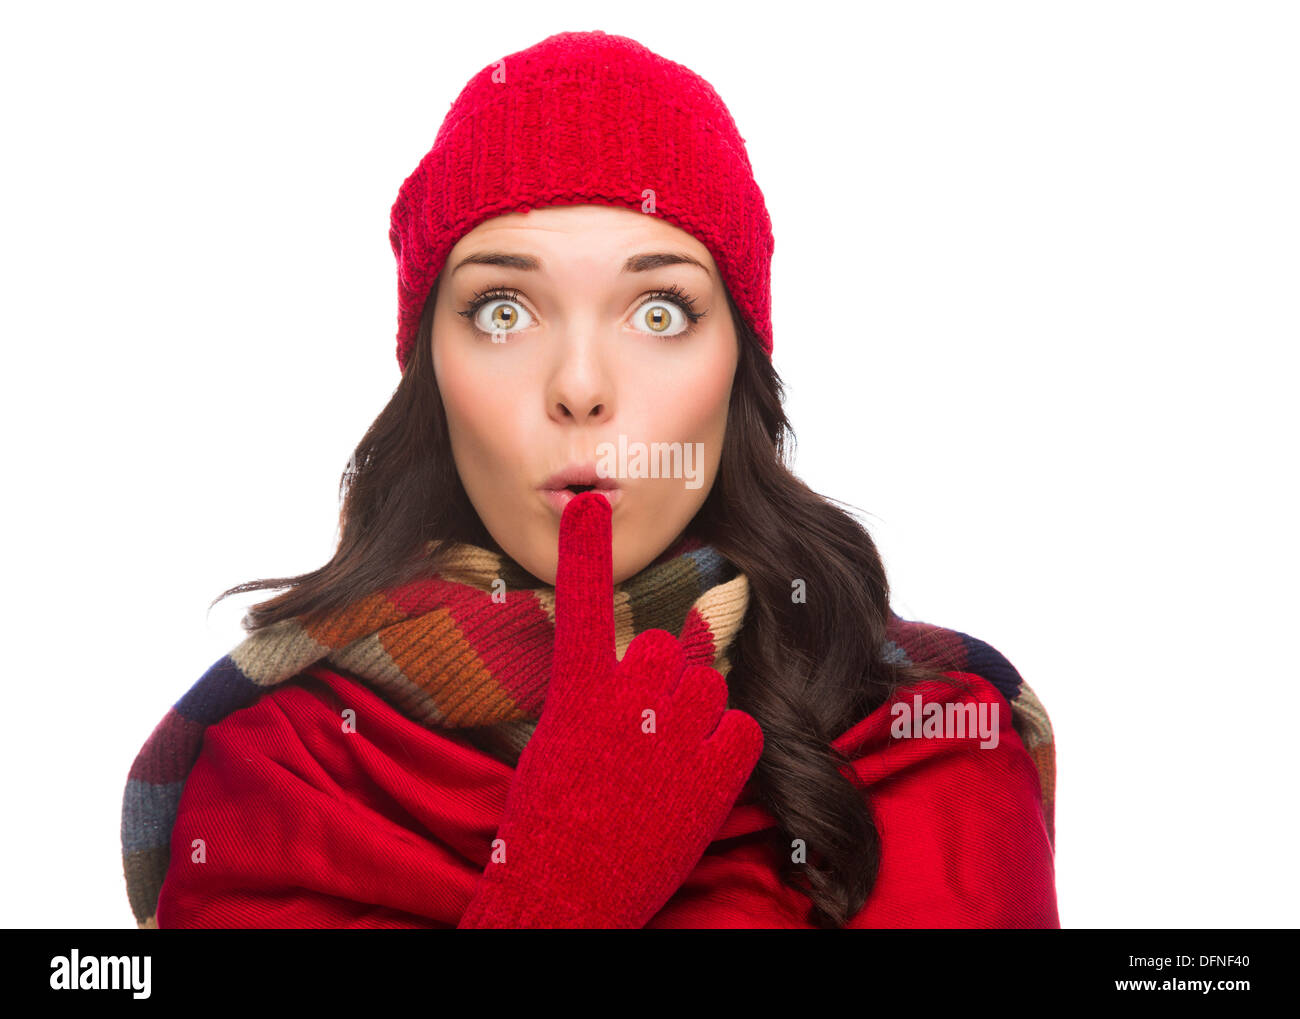 Funny Faced Wide Eyed Mixed Race Woman Wearing Winter Hat and Gloves Isolated on White Background. - Stock Image